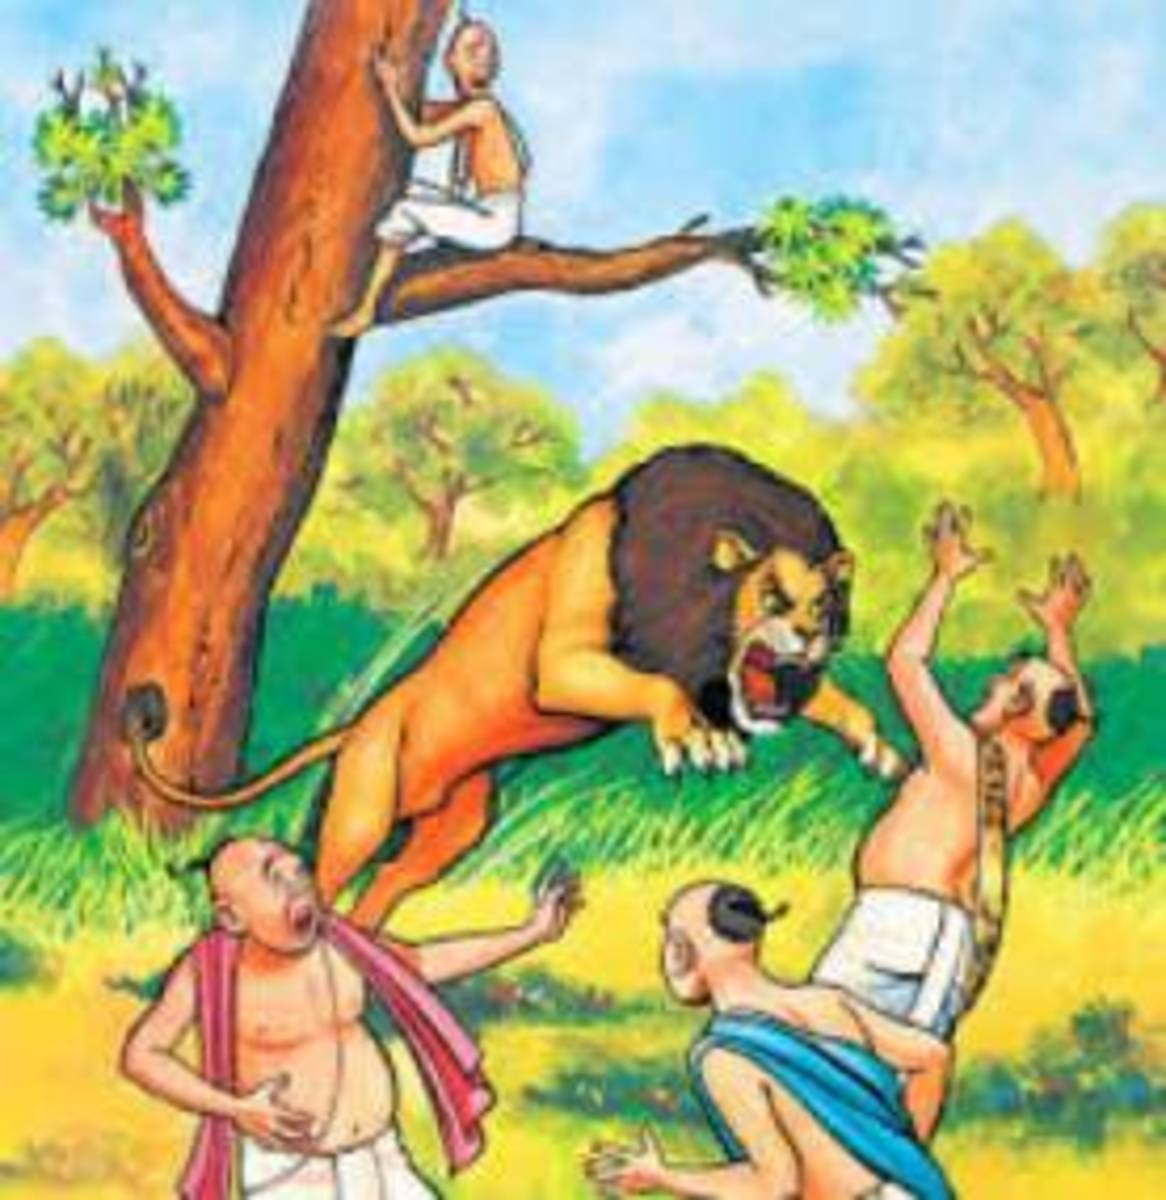 Lion attacking the scholars, Bholu watching them from a tree branch